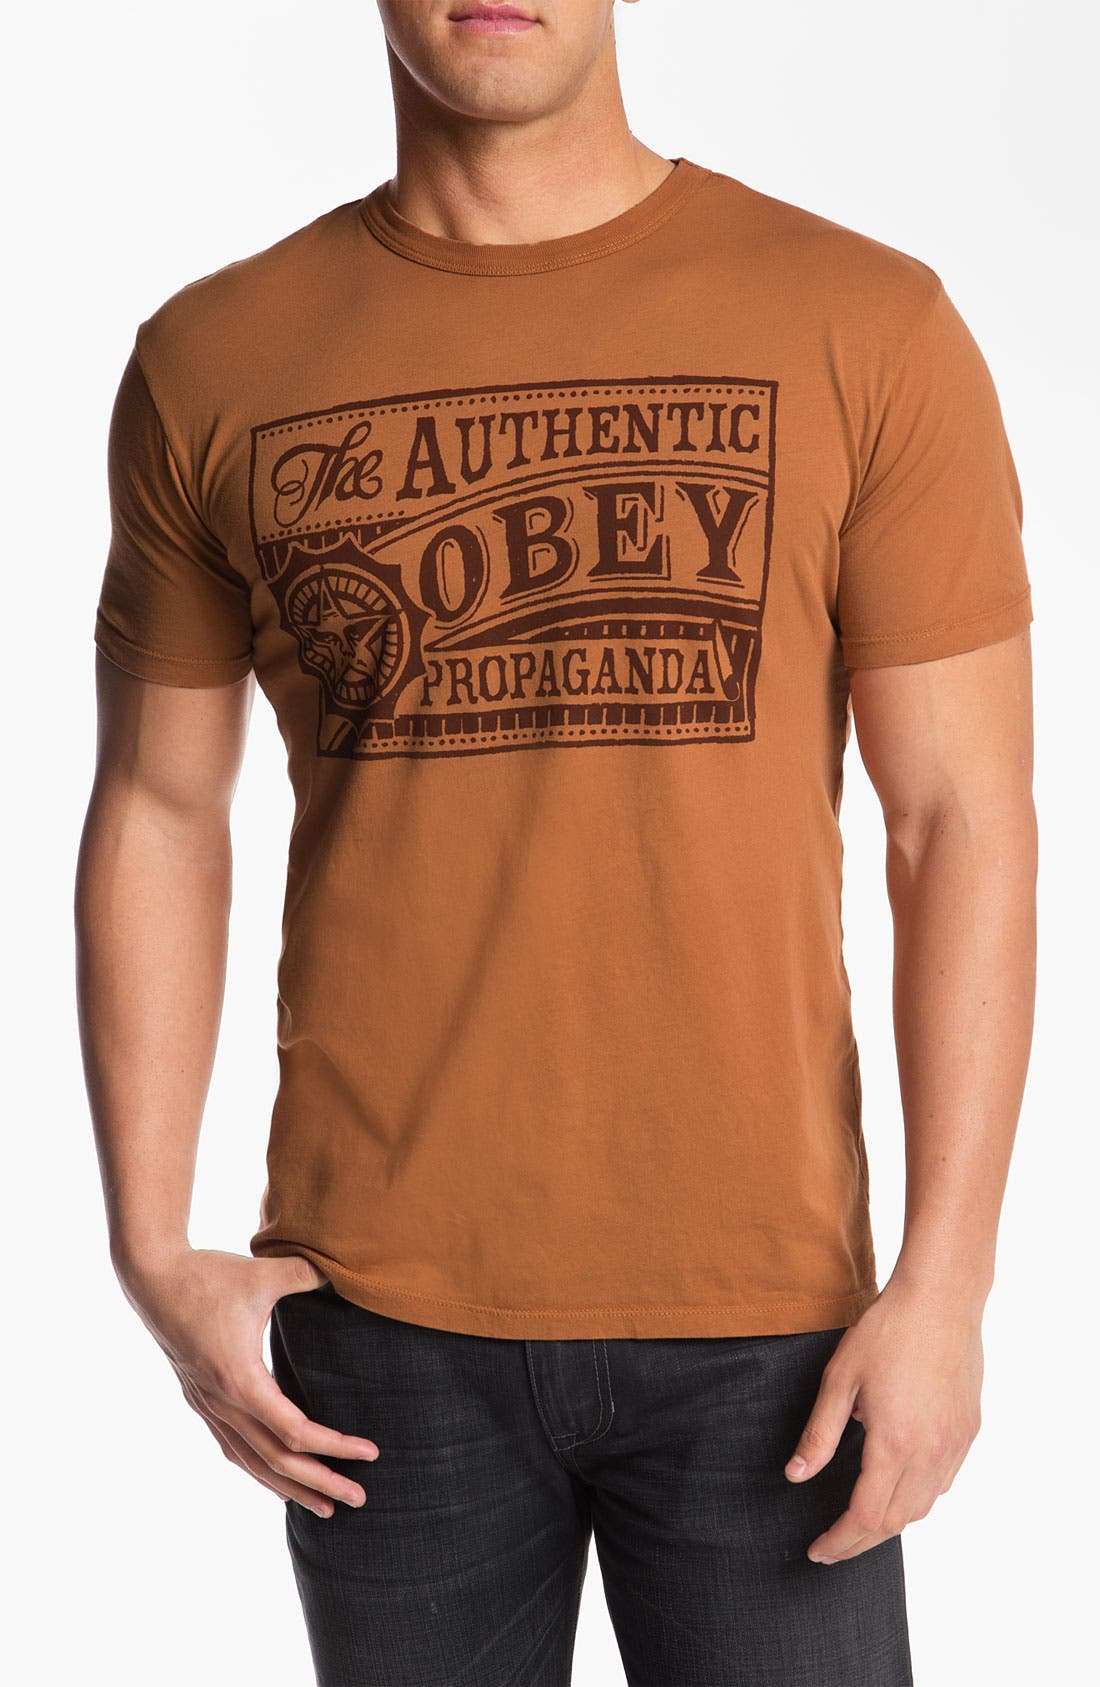 Main Image - Obey 'Authentic Obey' Graphic T-Shirt